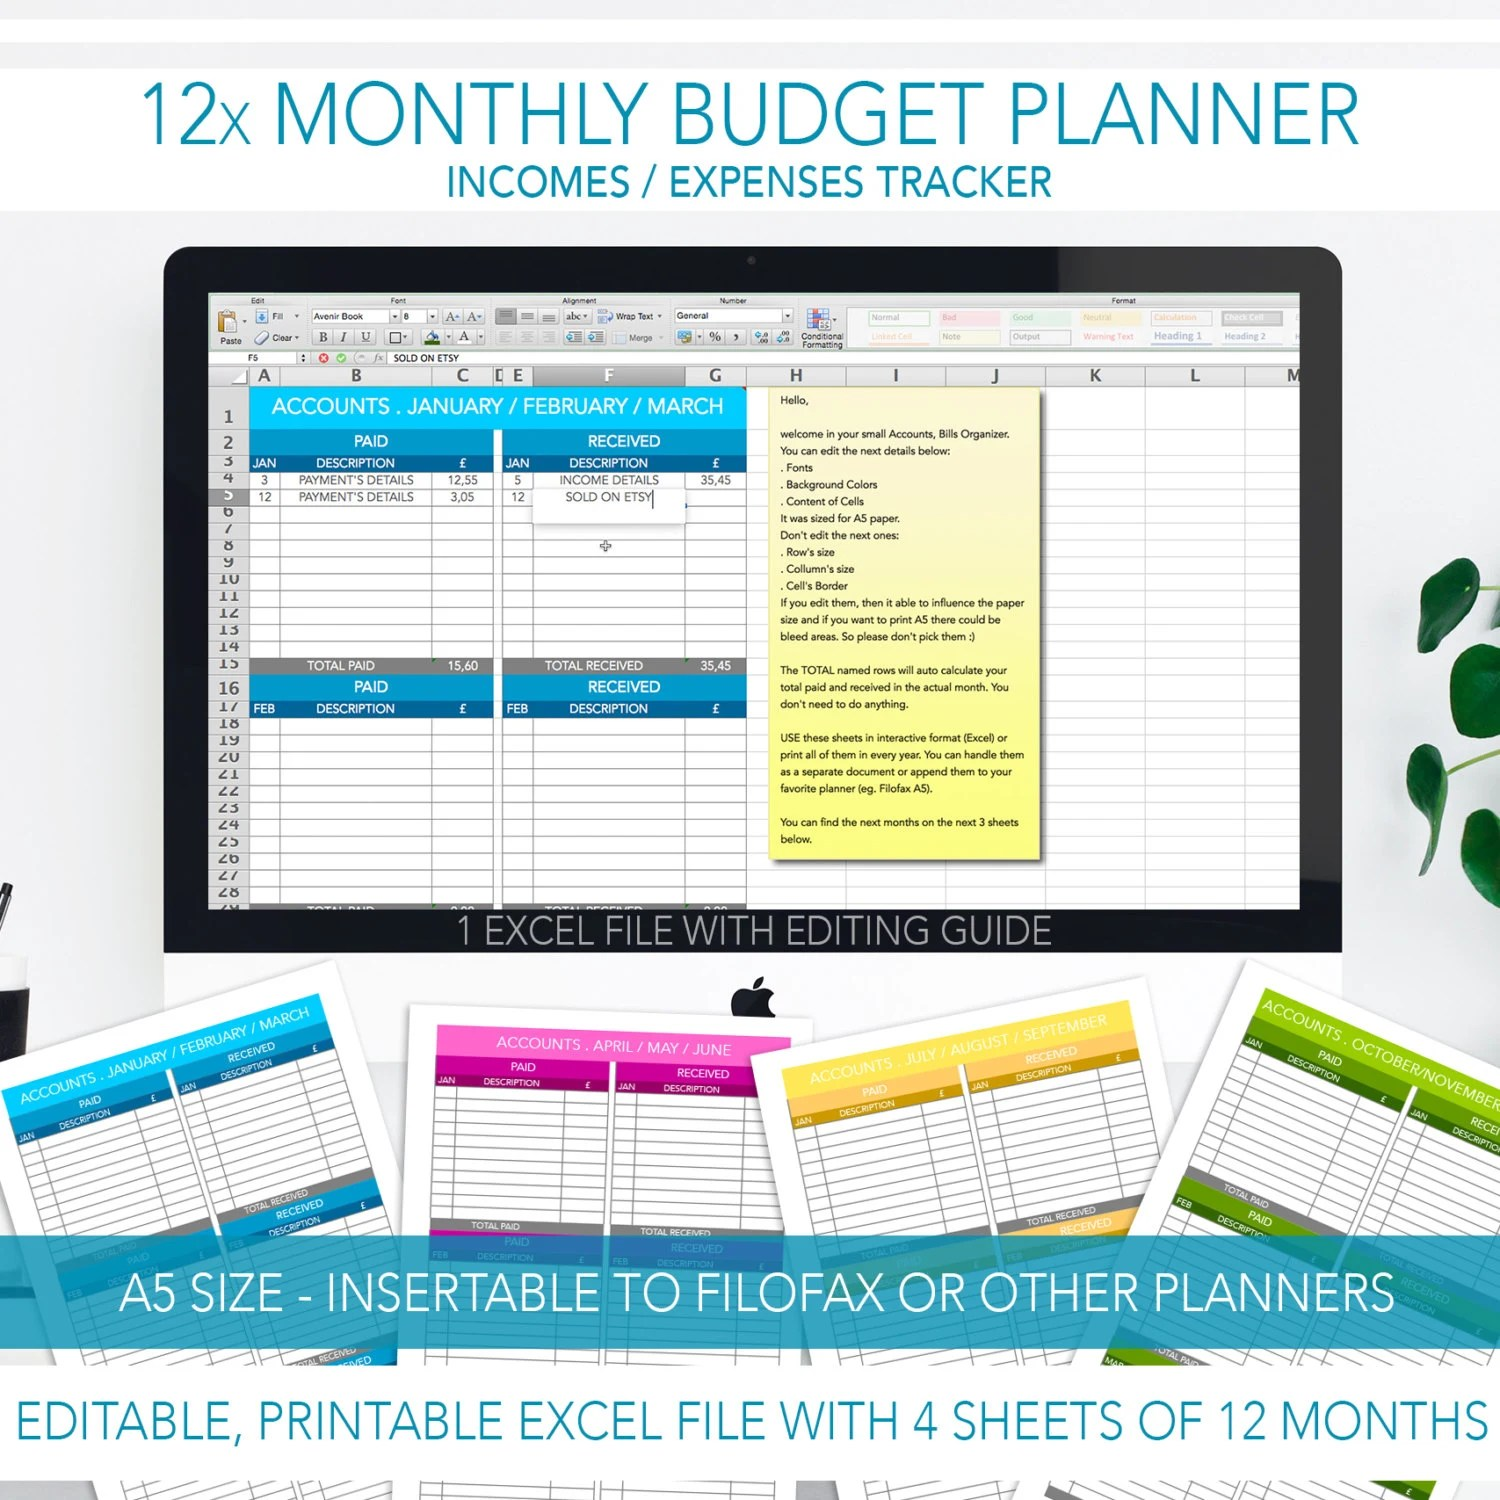 Monthly Bill Tracker Editable Budget Planner A5 Size 12